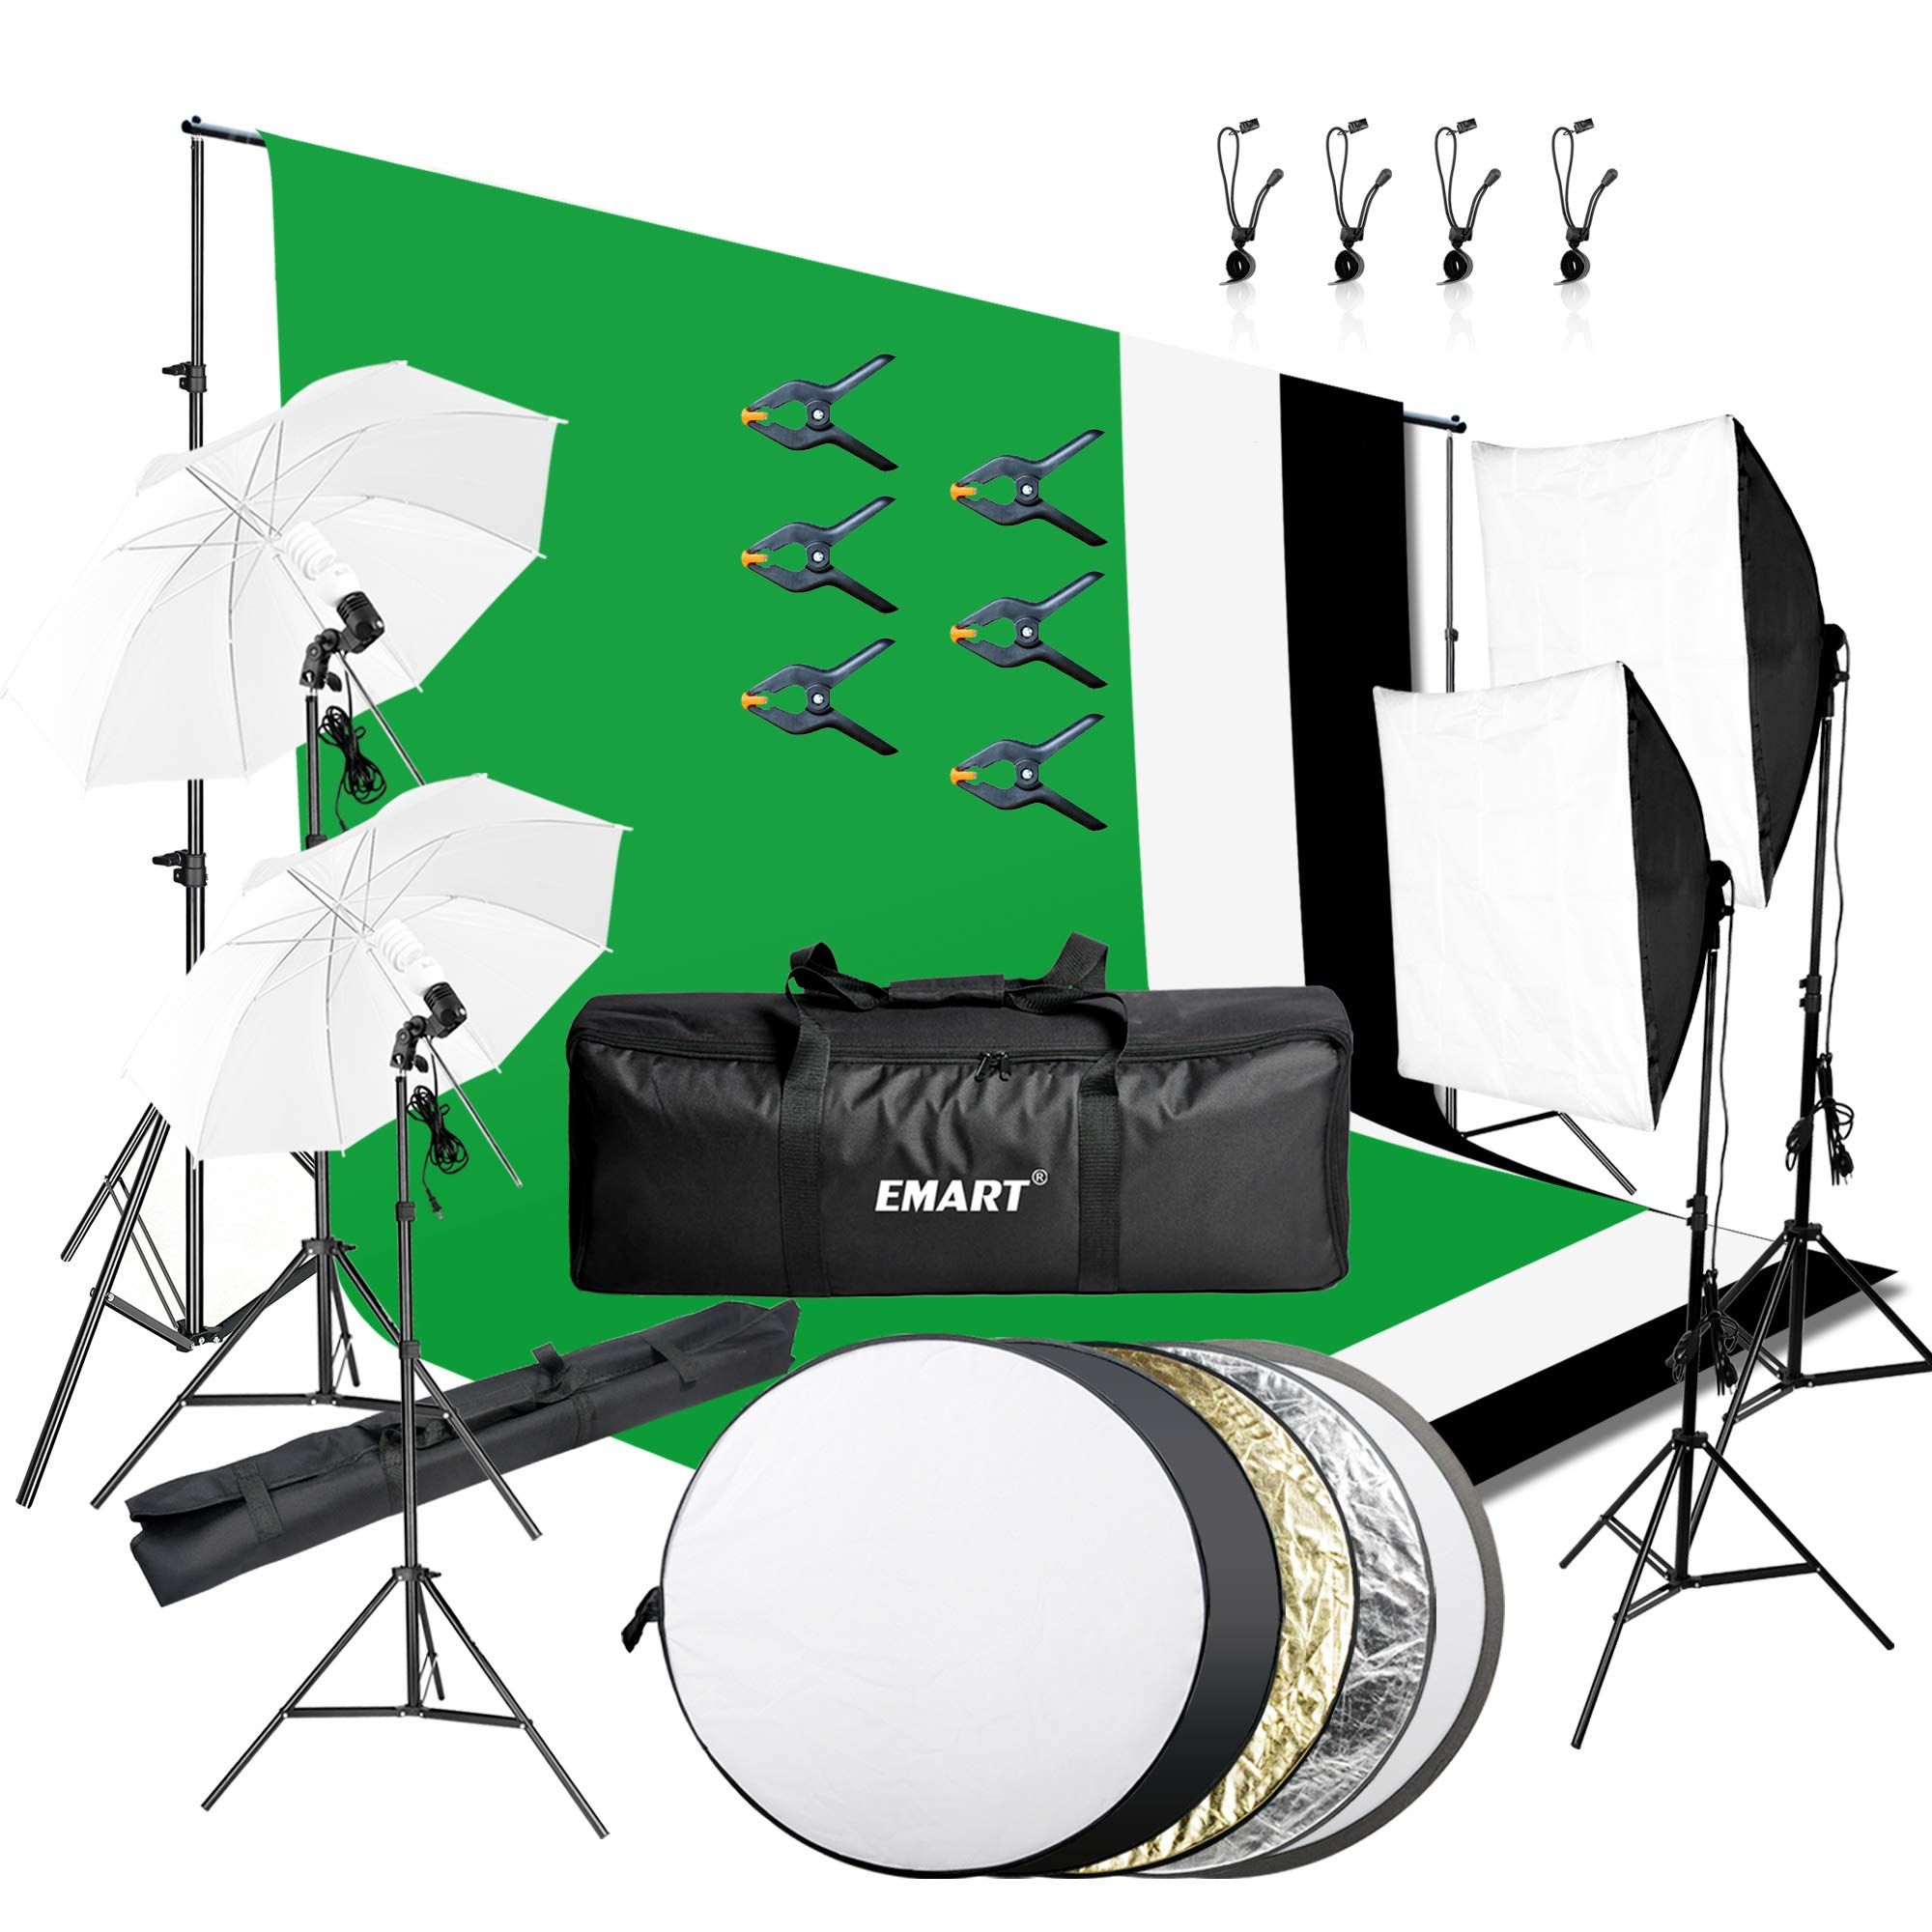 Emart 8.5 x 10 ft Backdrop Support System, Photography Video Studio Lighting Kit Umbrella Softbox Set Continuous Lighting for Photo Studio Product, Portrait and Video Shooting Photography by EMART